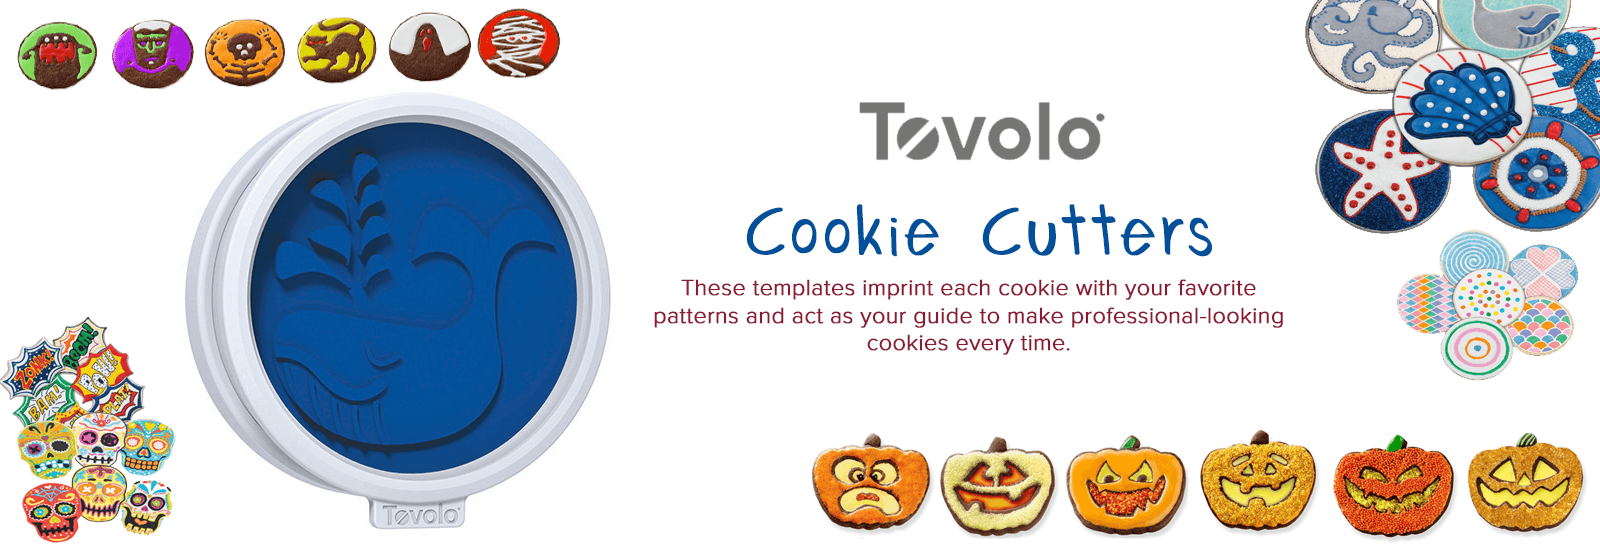 Tovolo Cookie Cutter banner